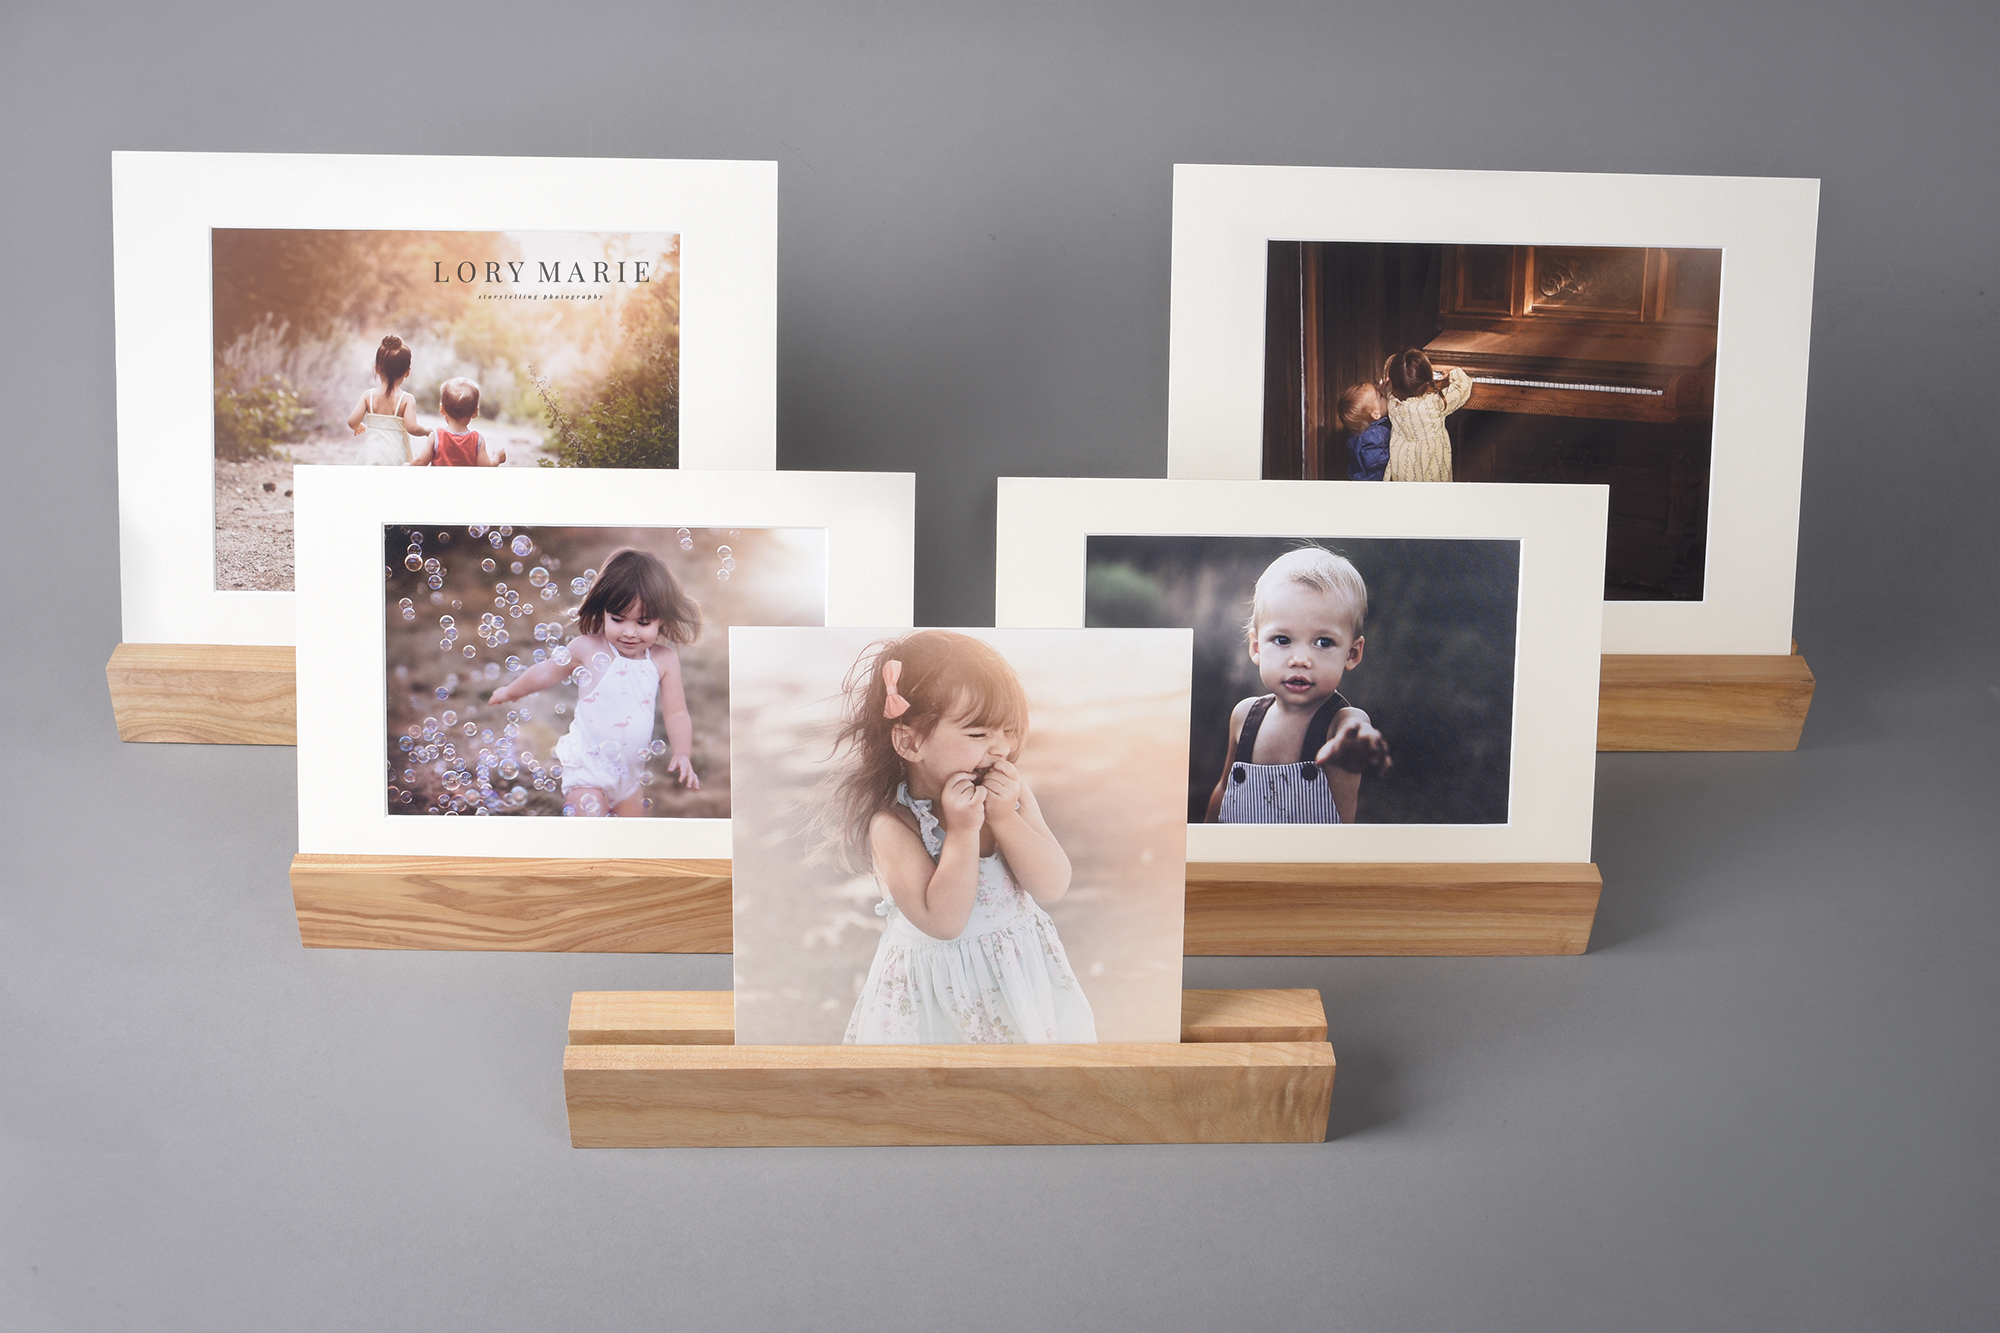 Professional photography wooden ledge display.